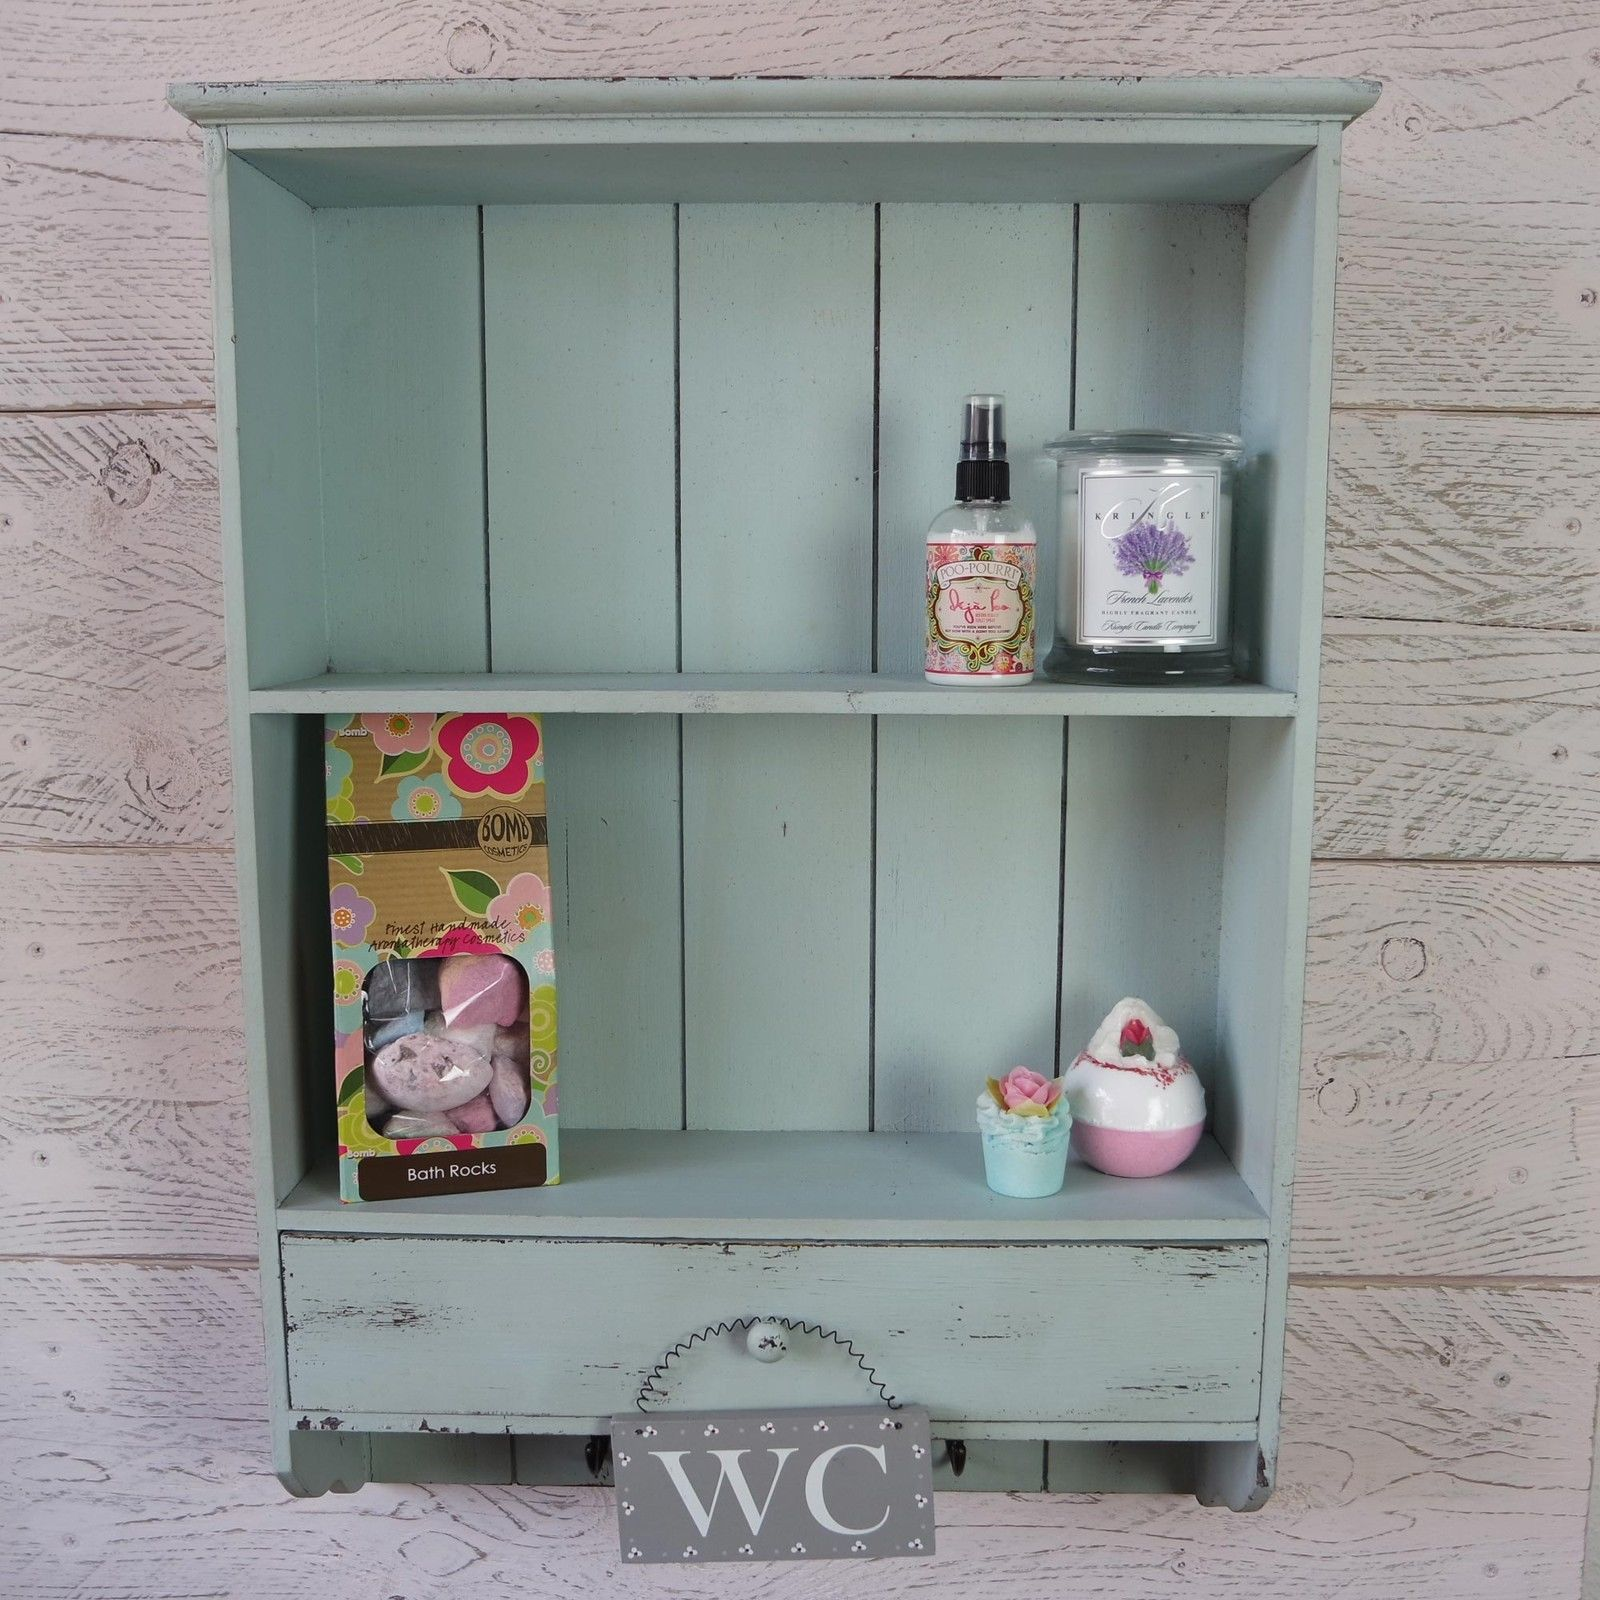 Spice Rack Bathroom Shelf Unit Decoupage Shabby Chic Free Standing ...